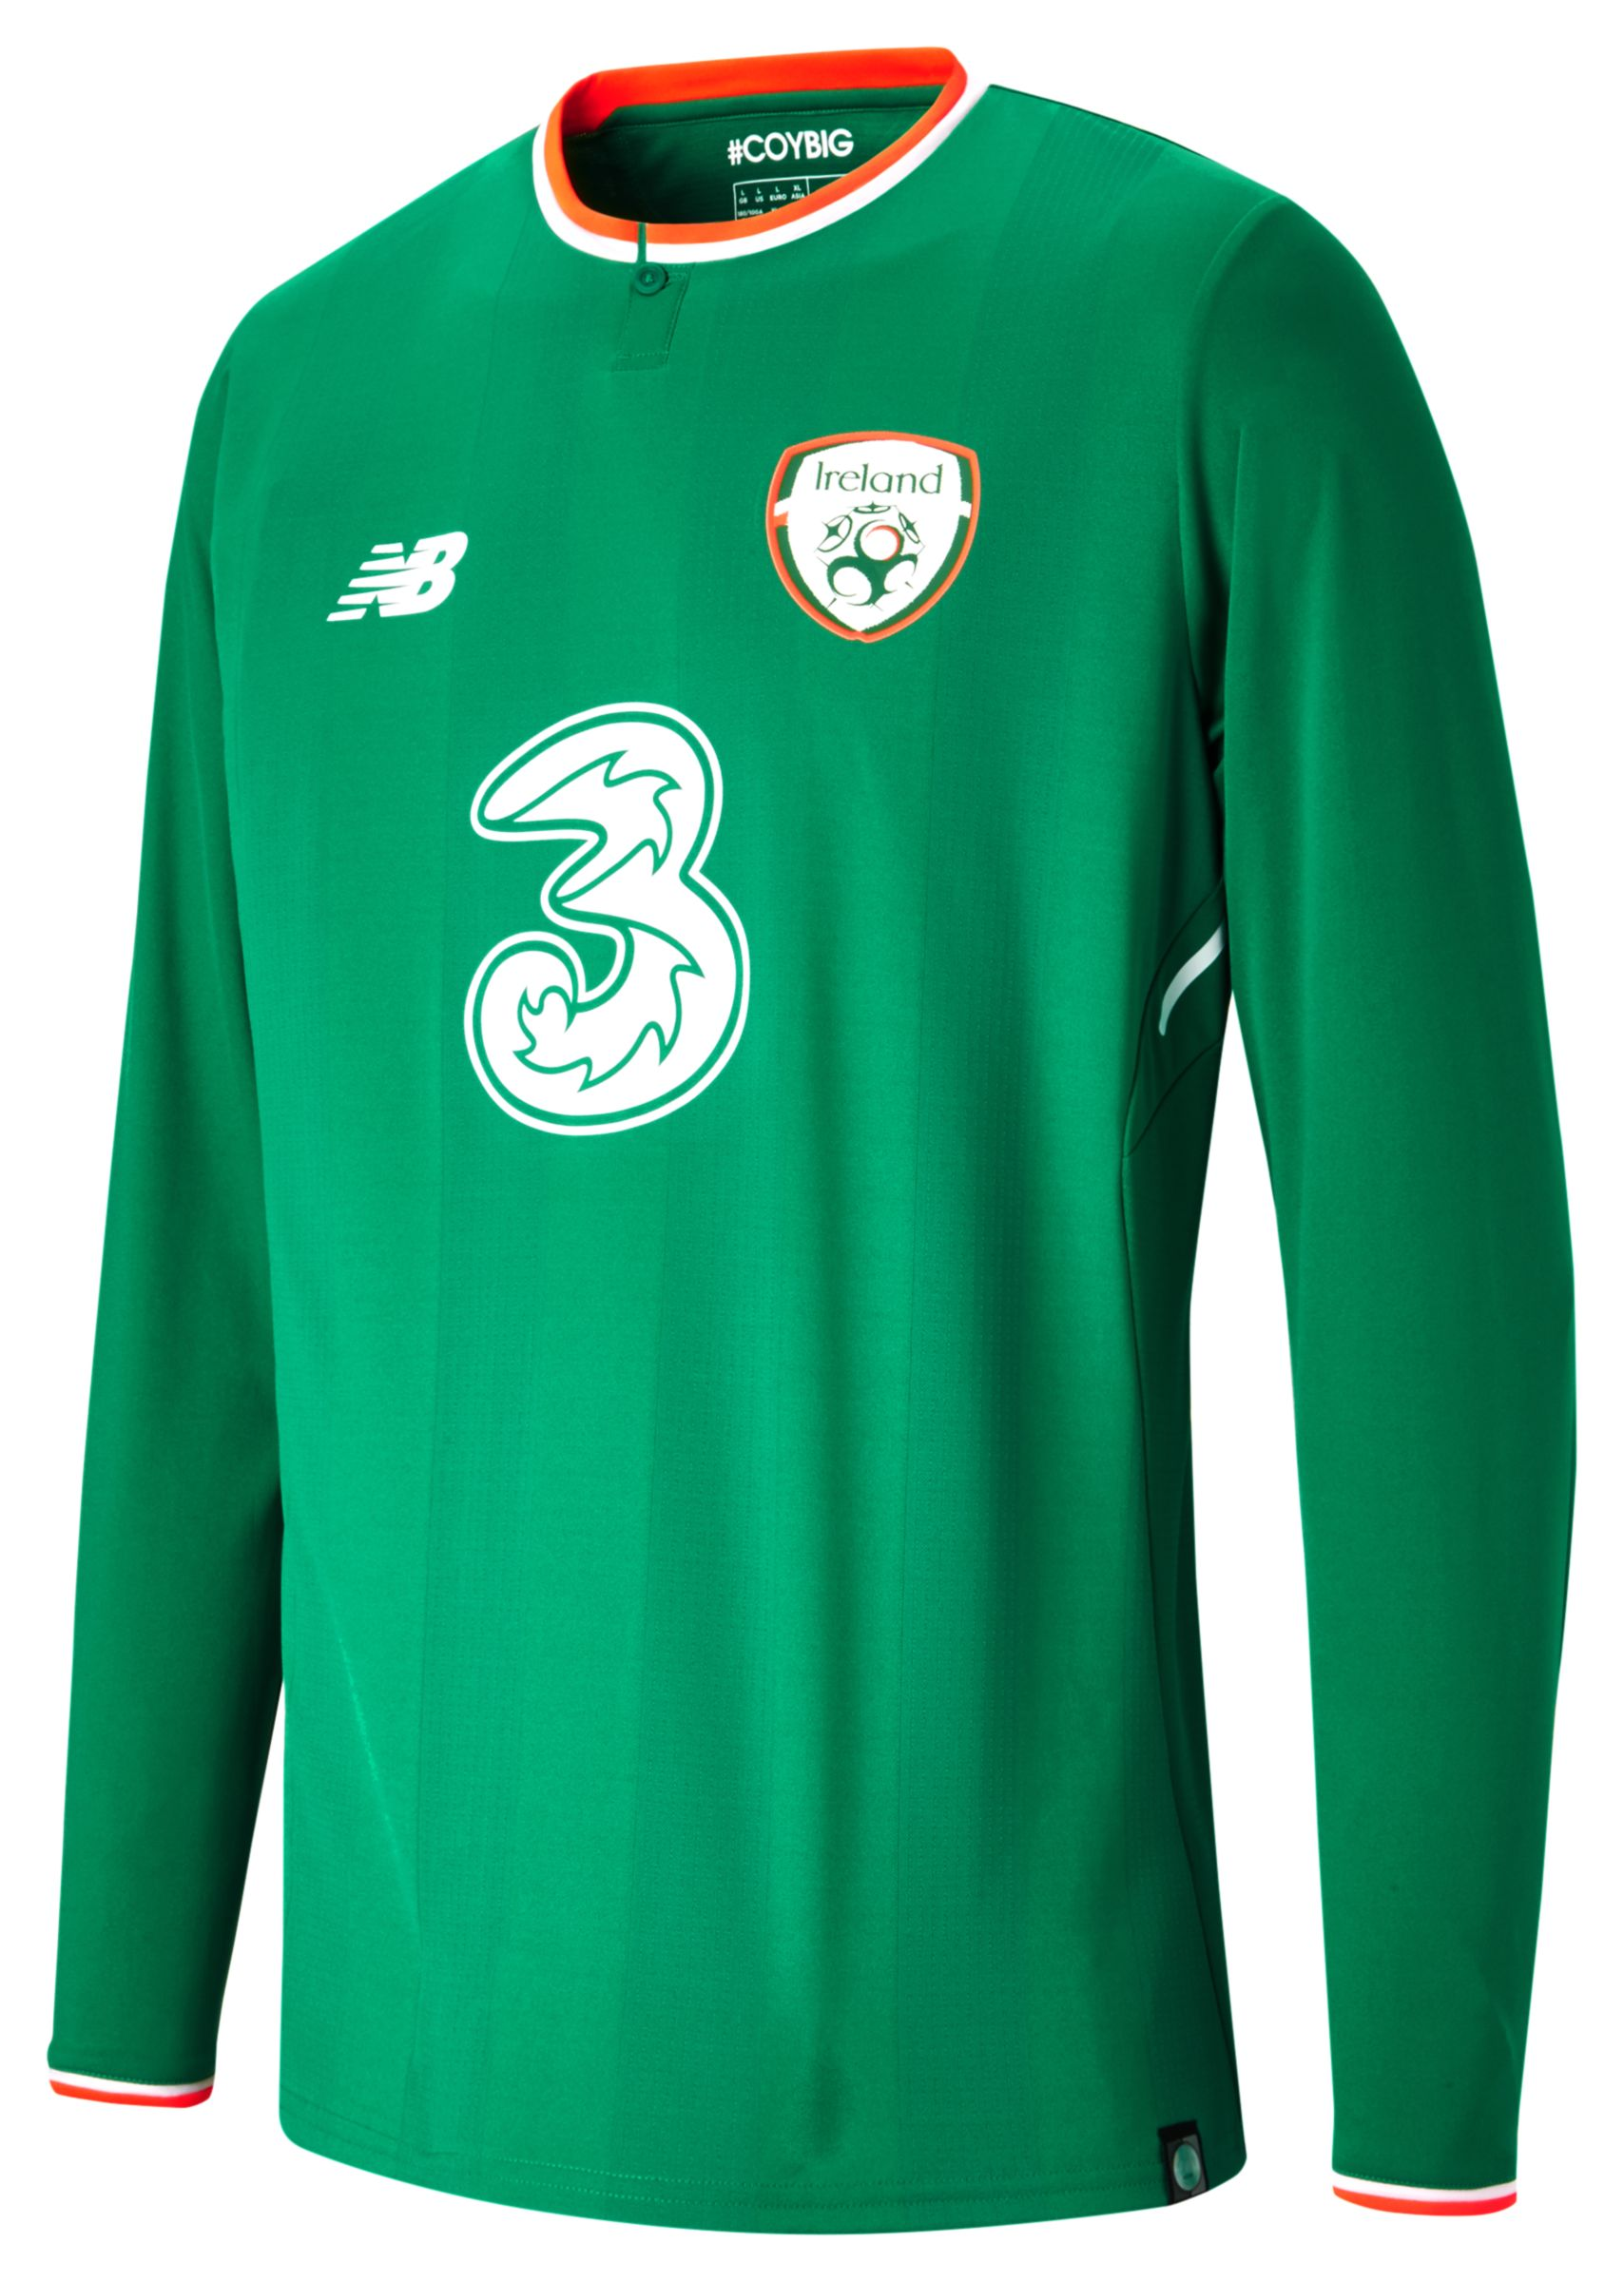 NB FAI Home LS Jersey, Jolly Green